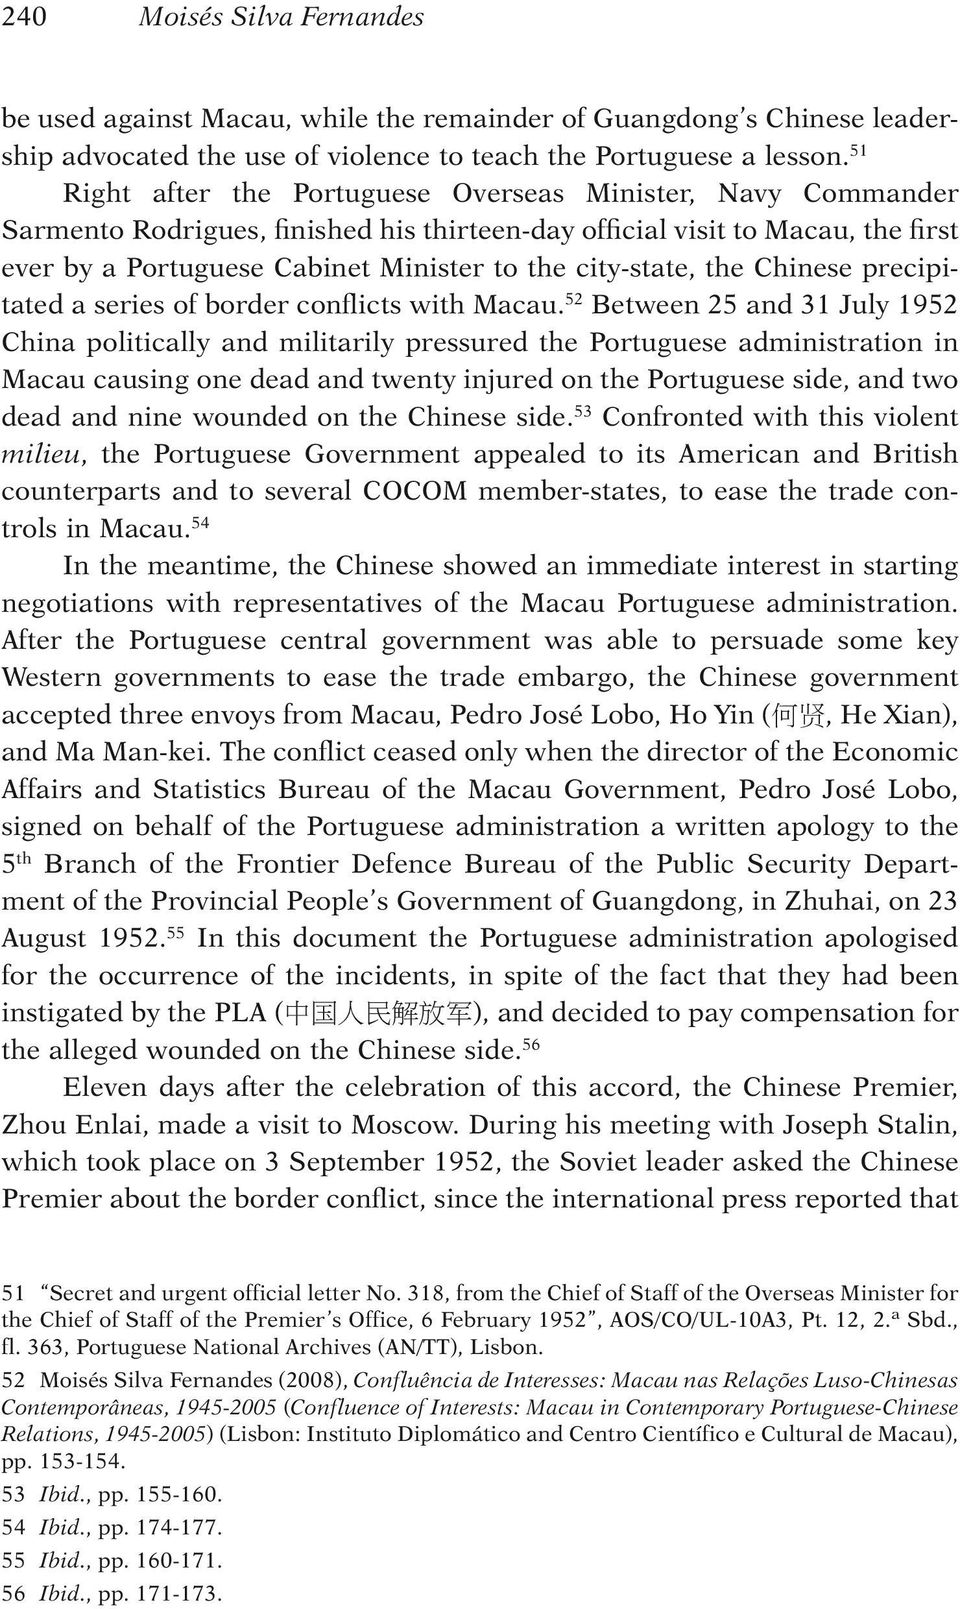 city-state, the Chinese precipitated a series of border conflicts with Macau.